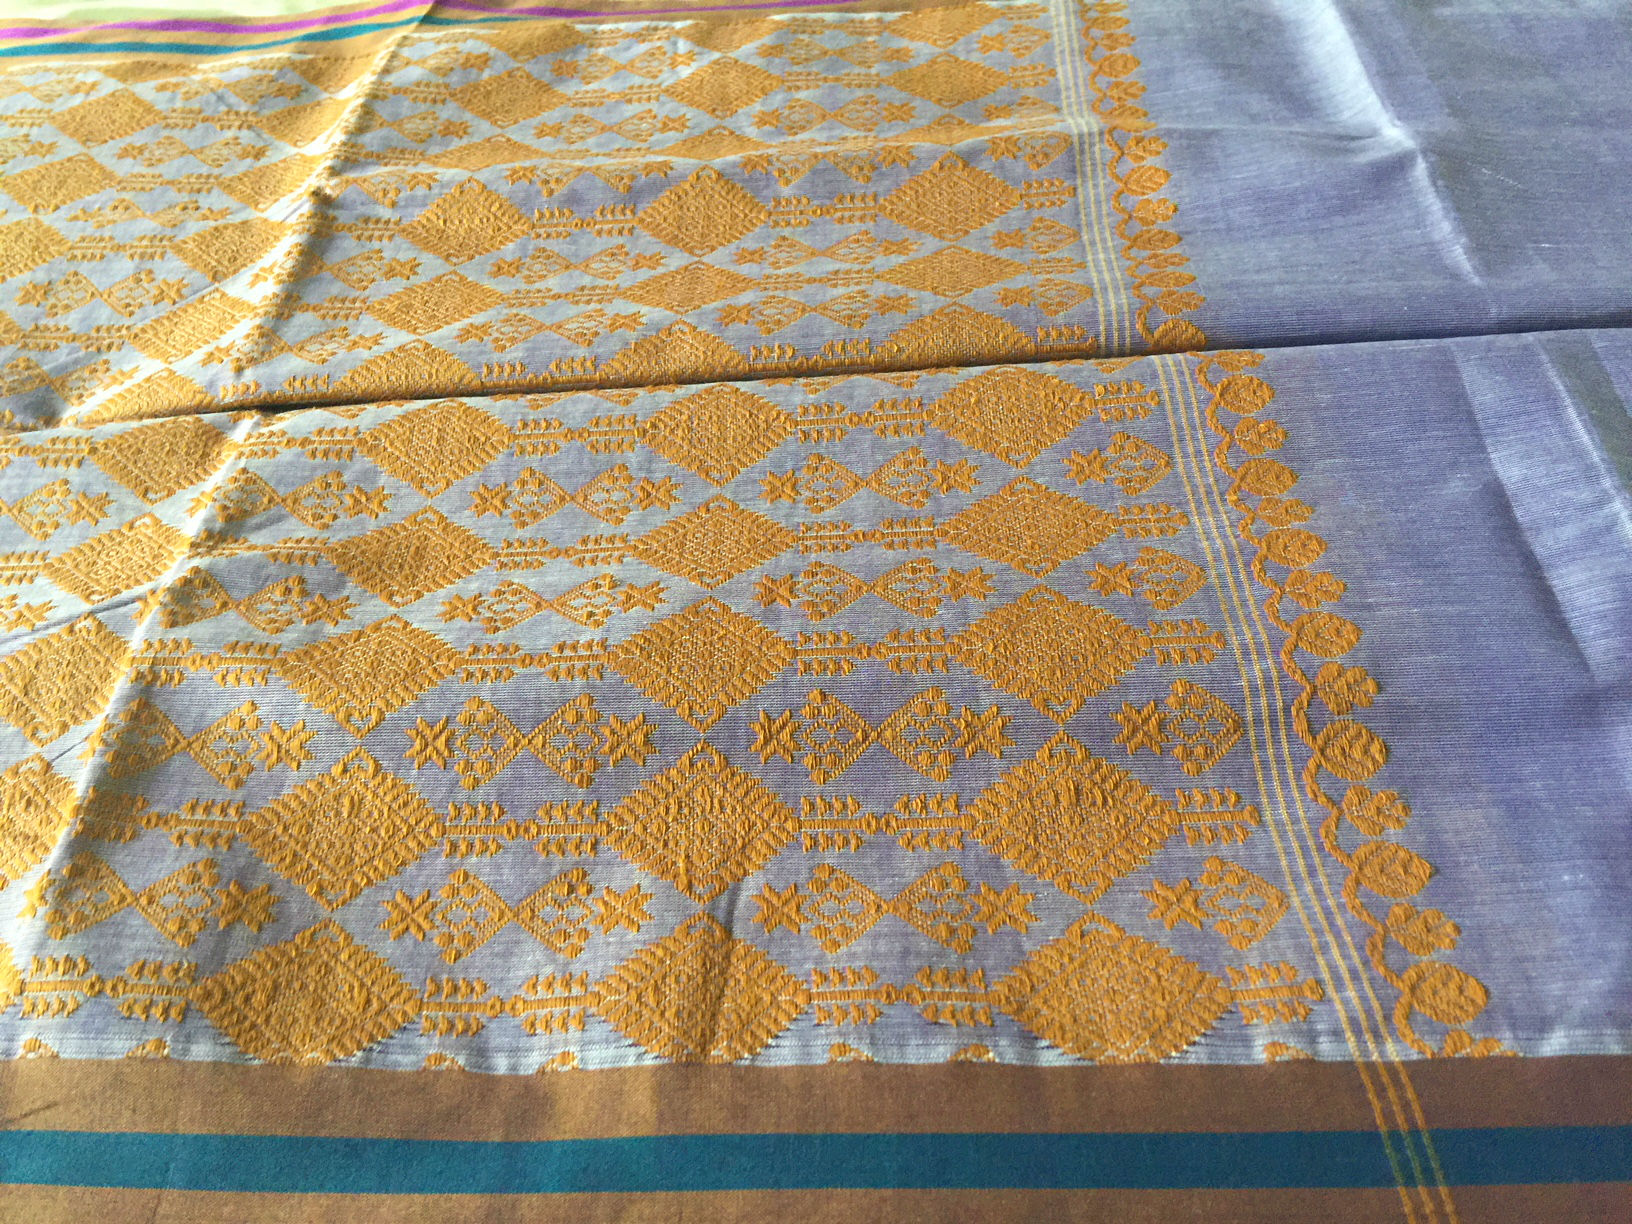 Assam Periwinkle with Gamkharu Motif